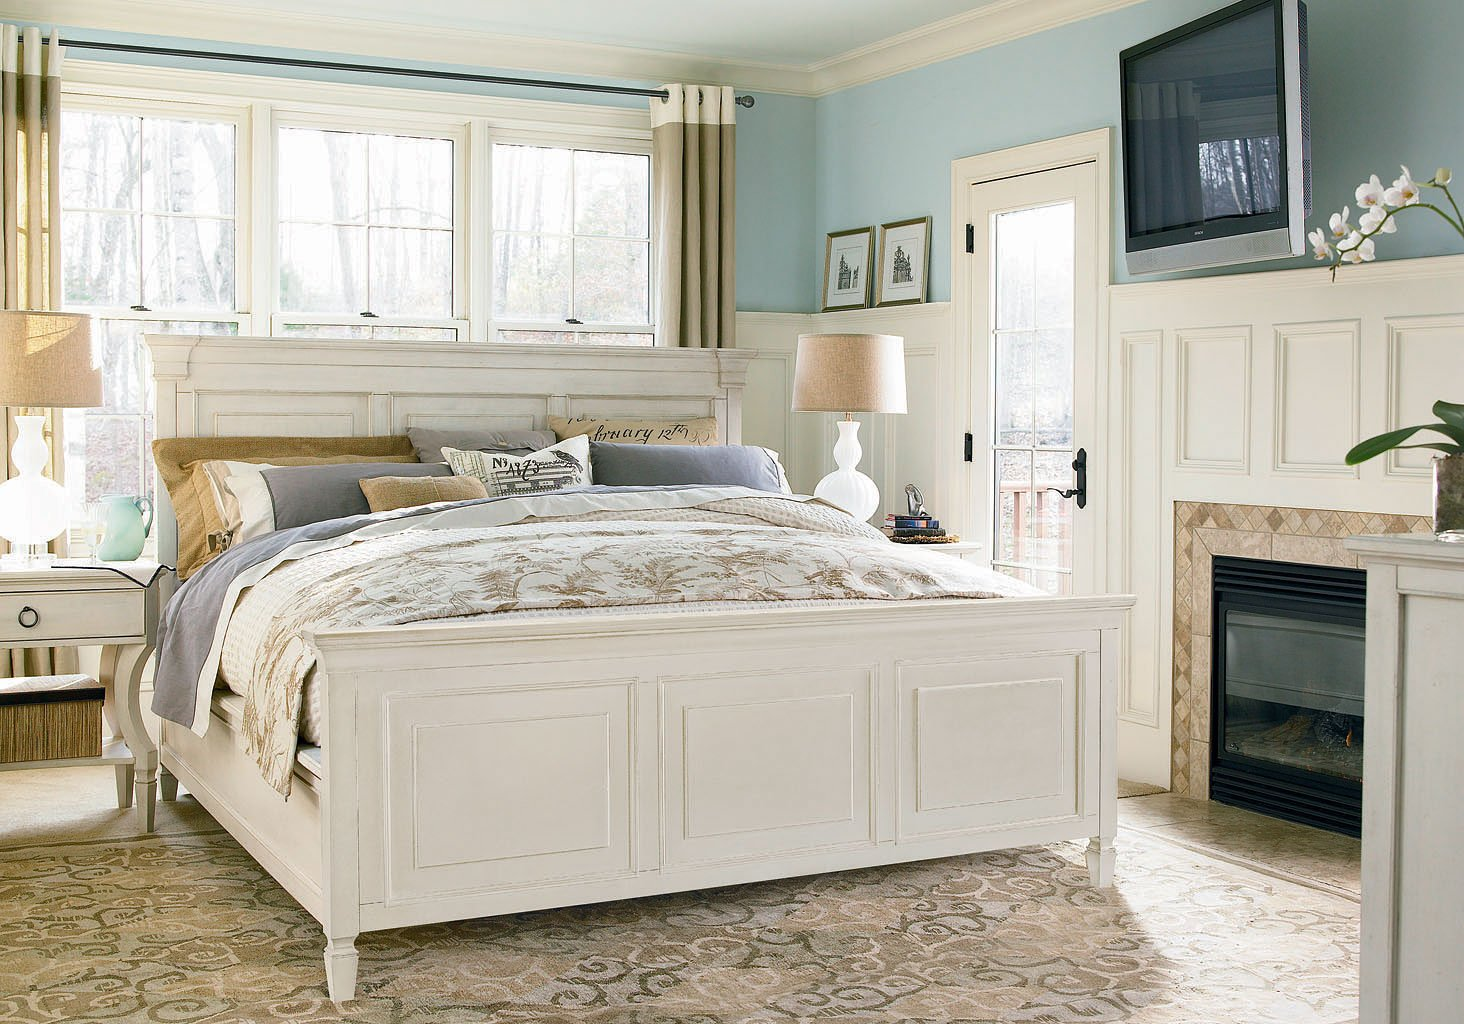 Kitchen Cabinet Kings Discount Code Summer Hill Panel Bedroom Set Cotton Universal Furniture